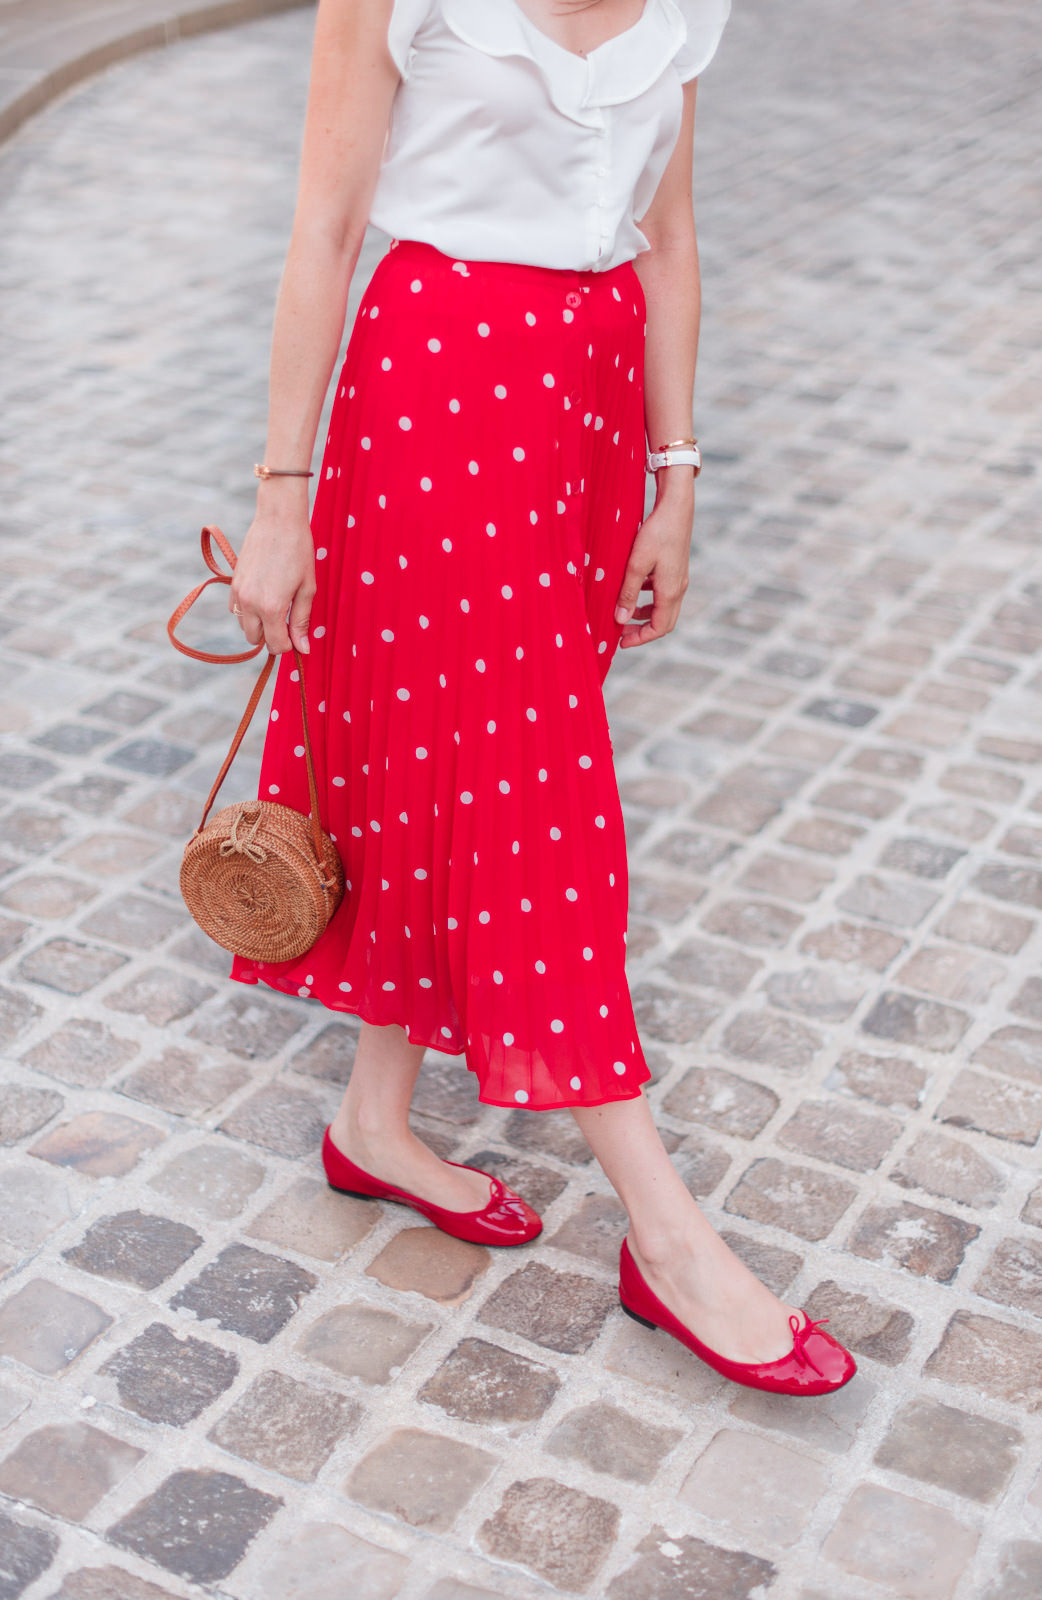 Blog-Mode-And-The-City-Looks-Jupe-rouge-a-pois-5